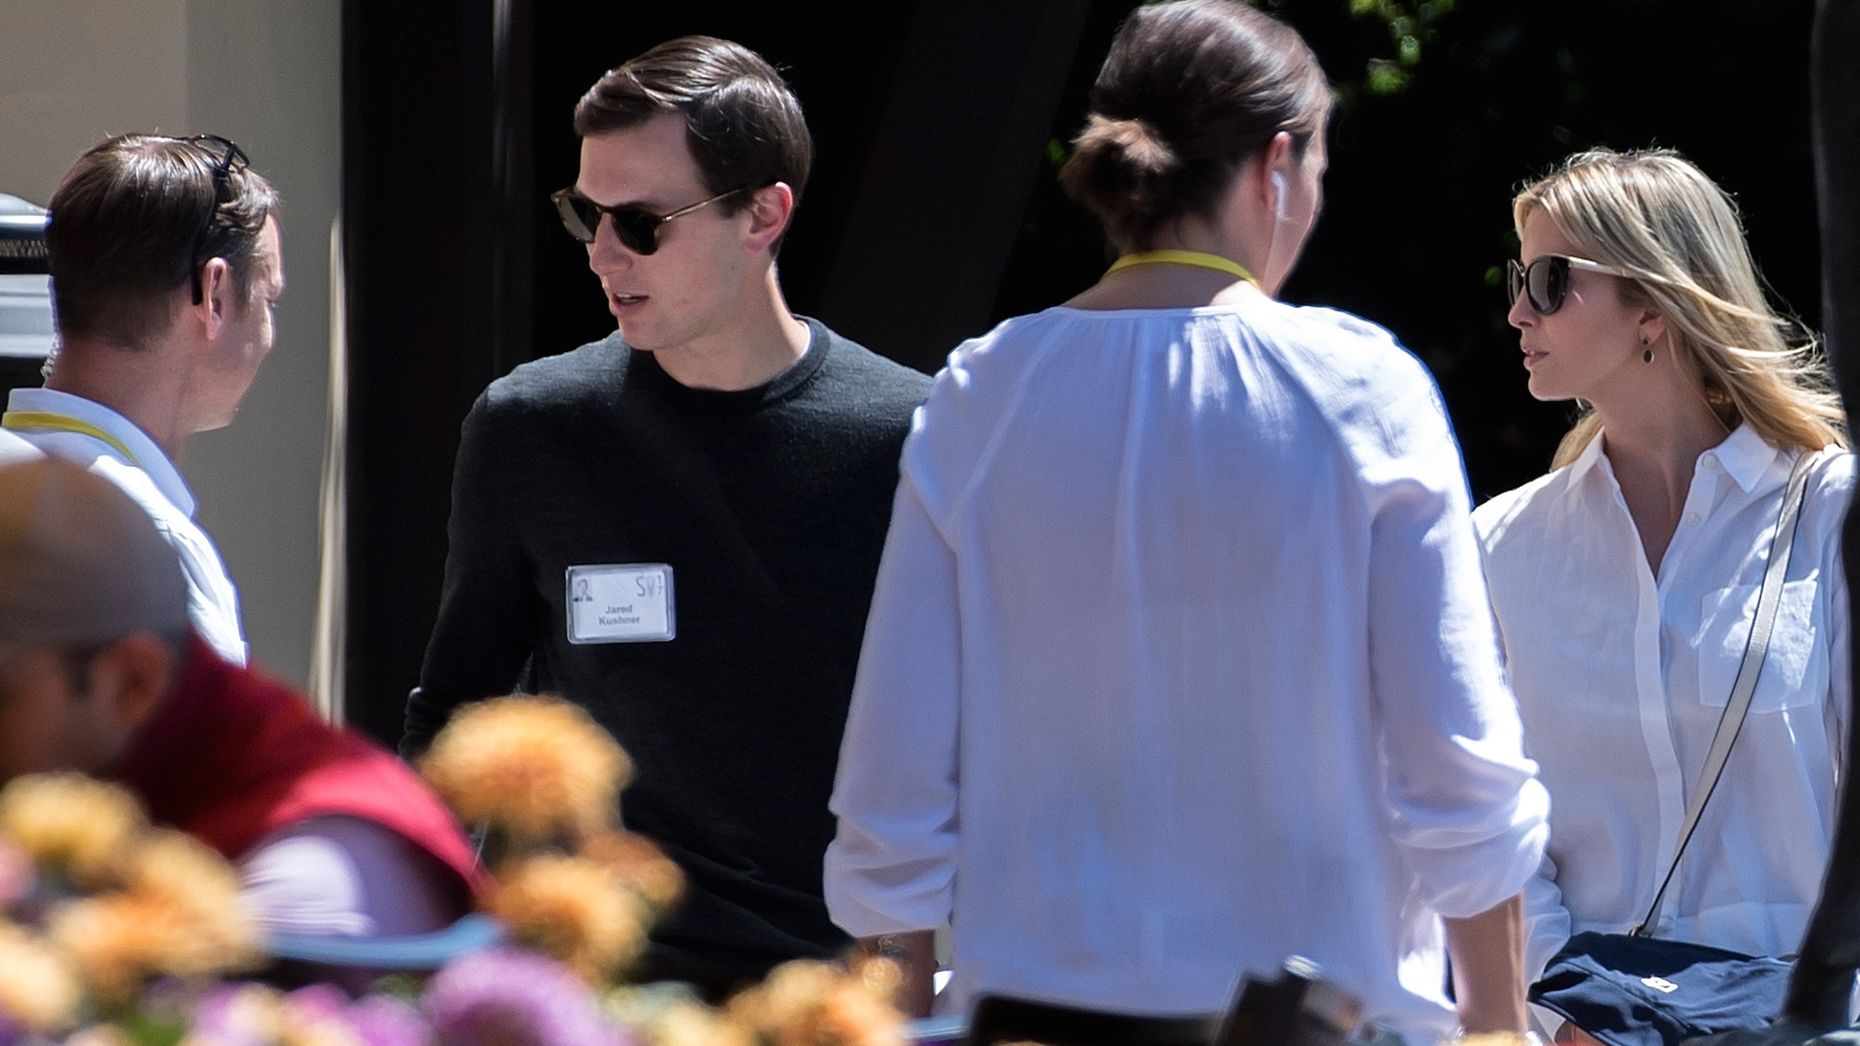 Jared Kushner and Ivanka Trump at the Allen & Co conference in Sun Valley, Idaho on Thursday. Photo by Bloomberg.